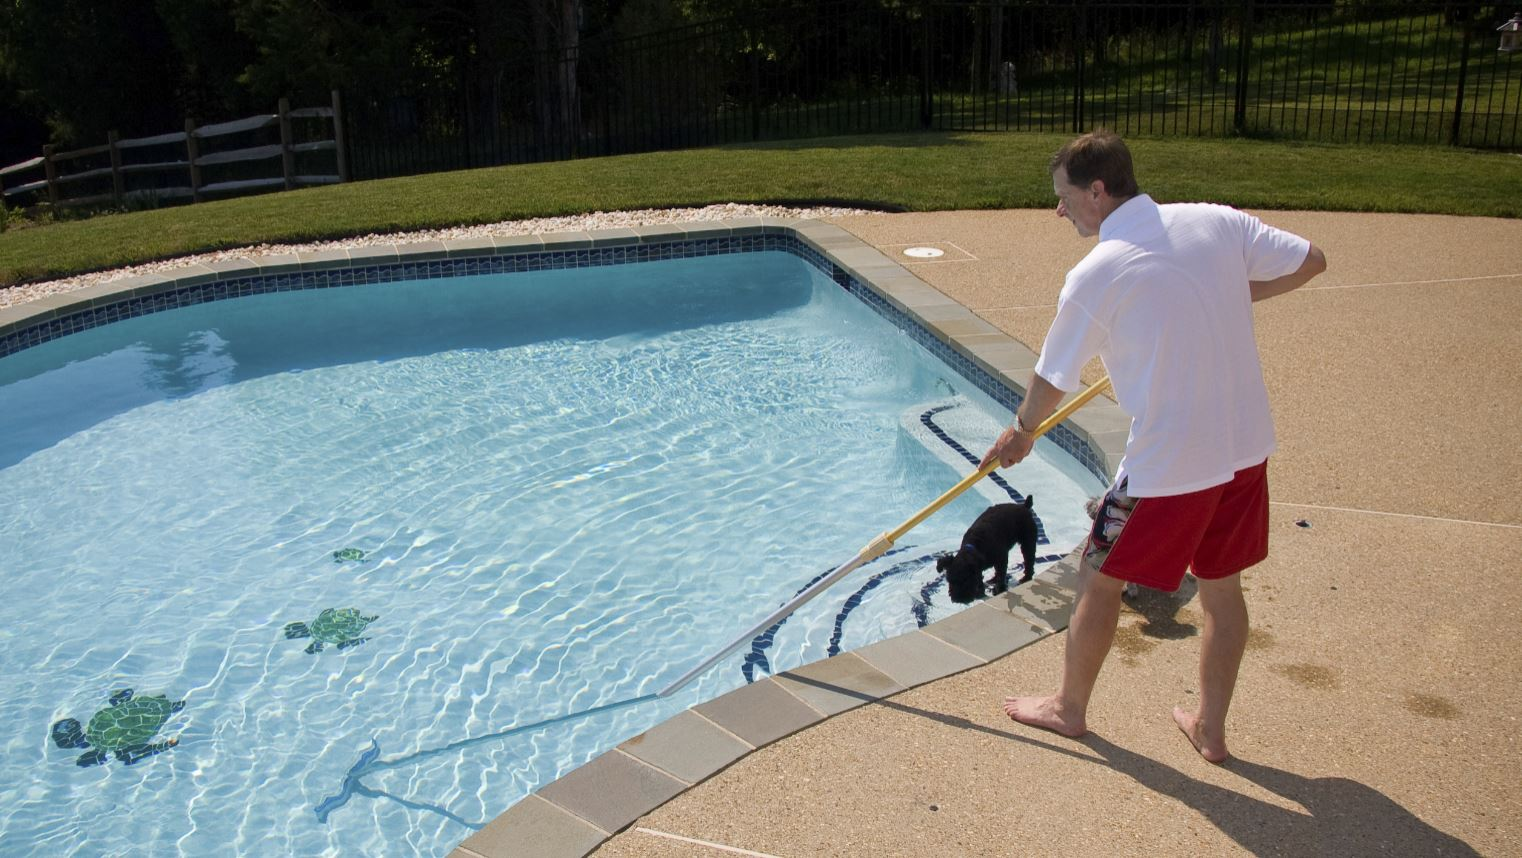 Professional Pool Cleaning Services In Visalia Ca 93292